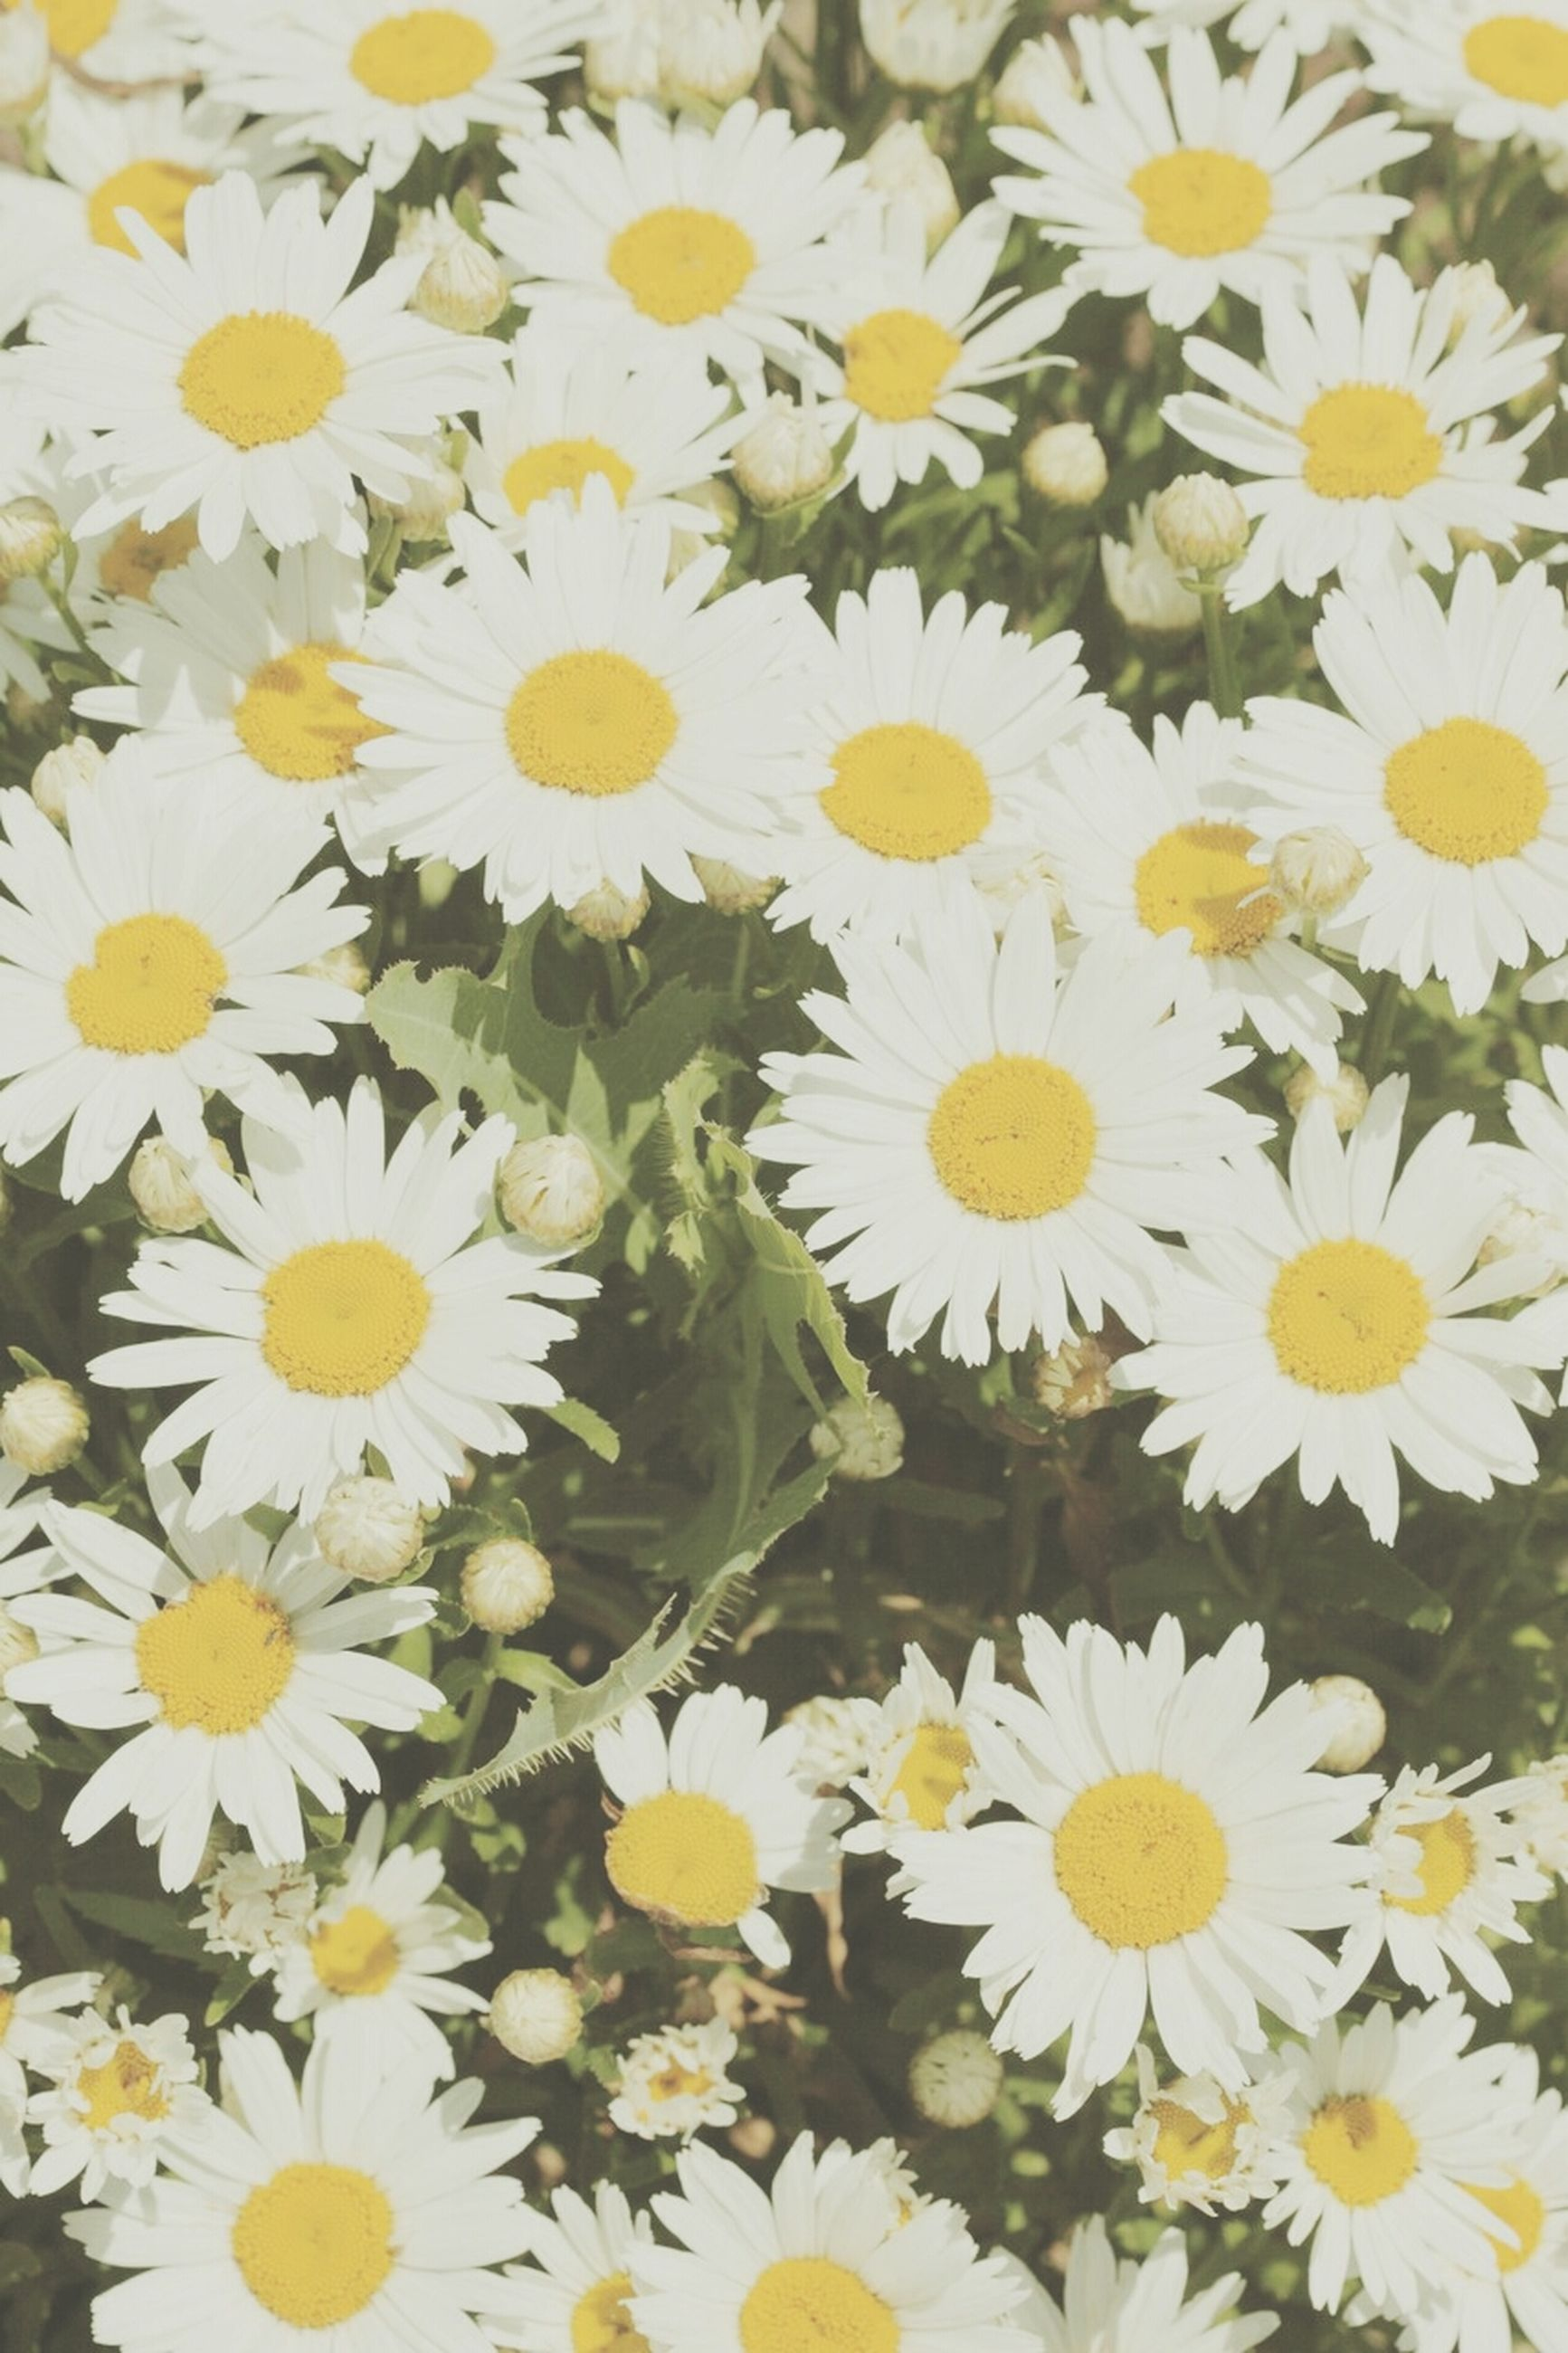 flower, freshness, petal, fragility, flower head, daisy, yellow, growth, beauty in nature, white color, blooming, nature, full frame, high angle view, backgrounds, pollen, plant, abundance, in bloom, close-up